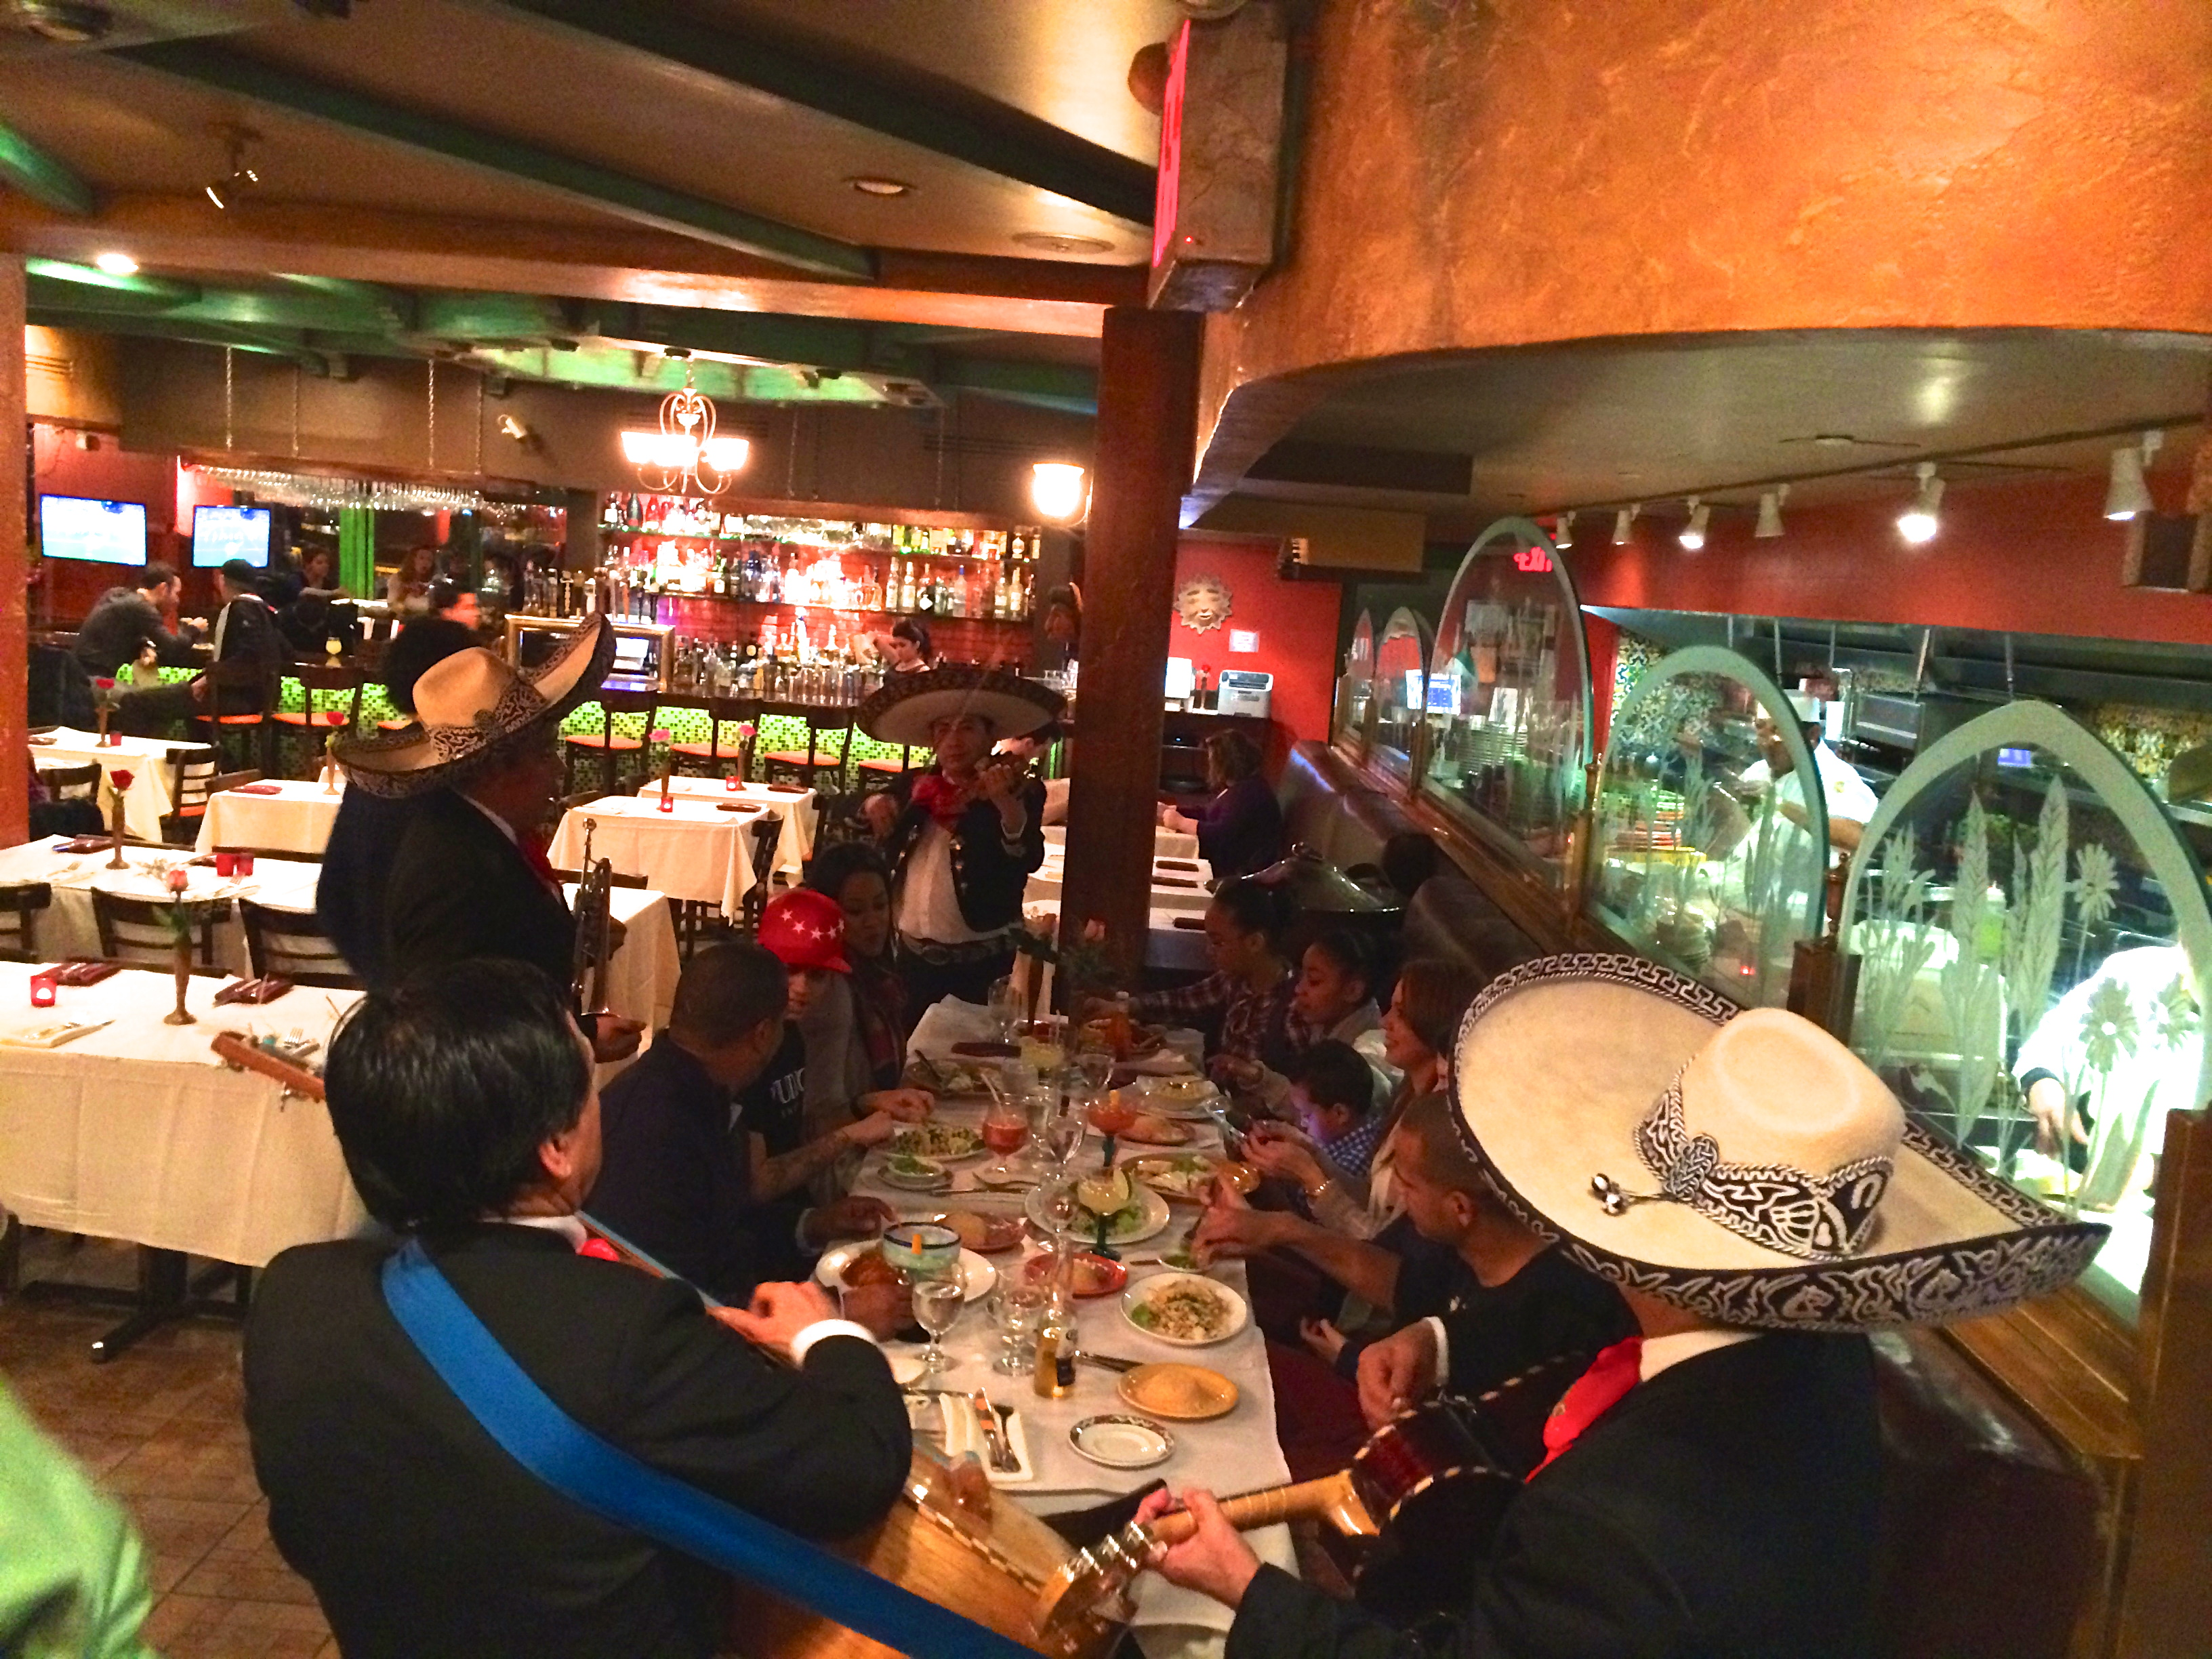 Local Restaurants Near Me: Mexican Festival Restaurant Coupons Near Me In New York